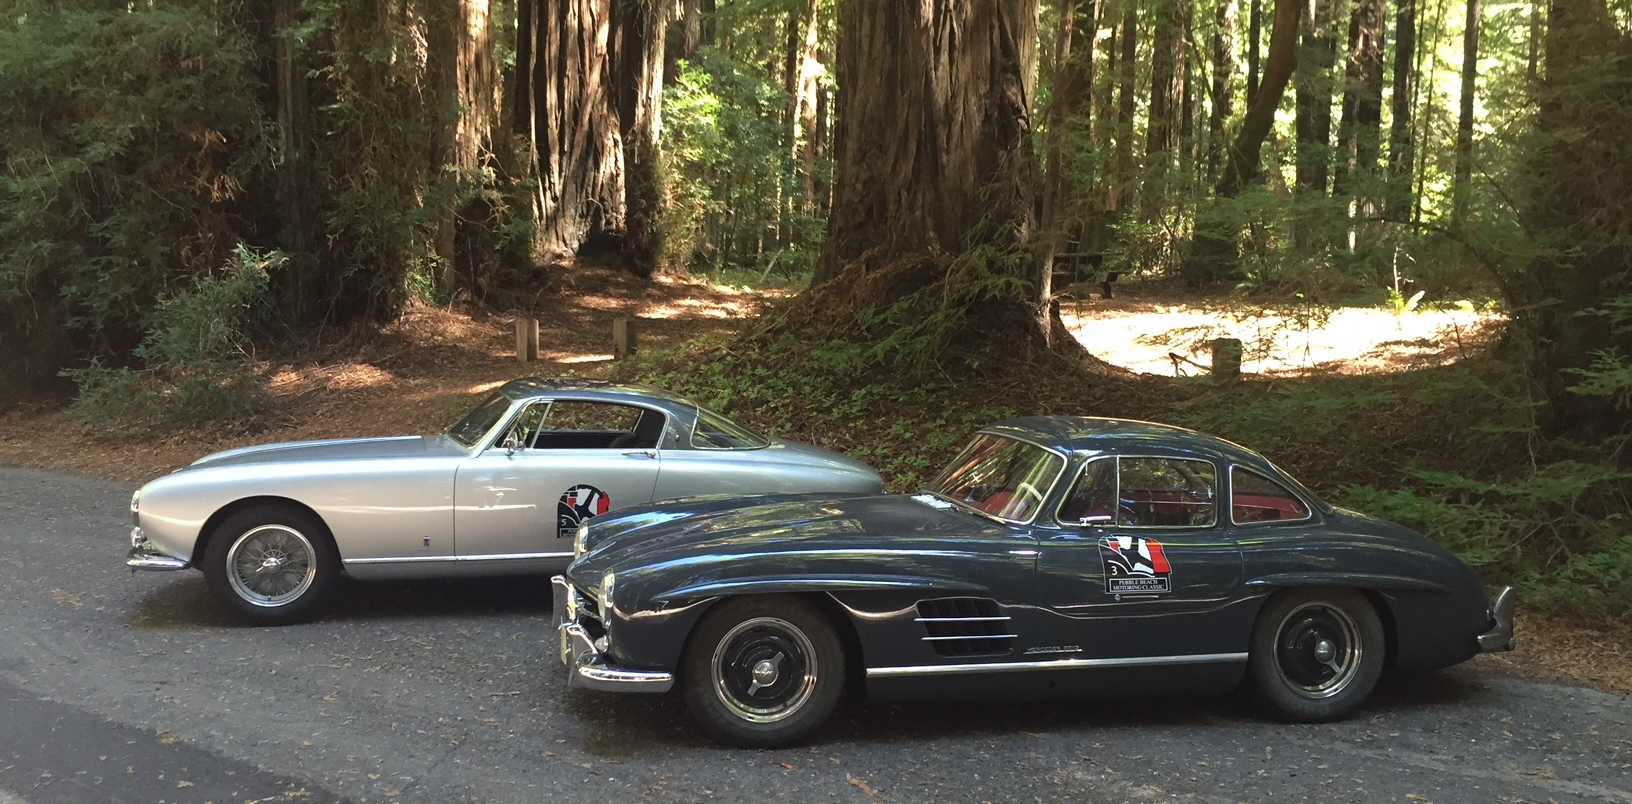 On the Pebble Beach Motoring Classic in our 1955 Mercedes-Benz 300 SL Gullwing along with a Ferrari 250 GT Europa